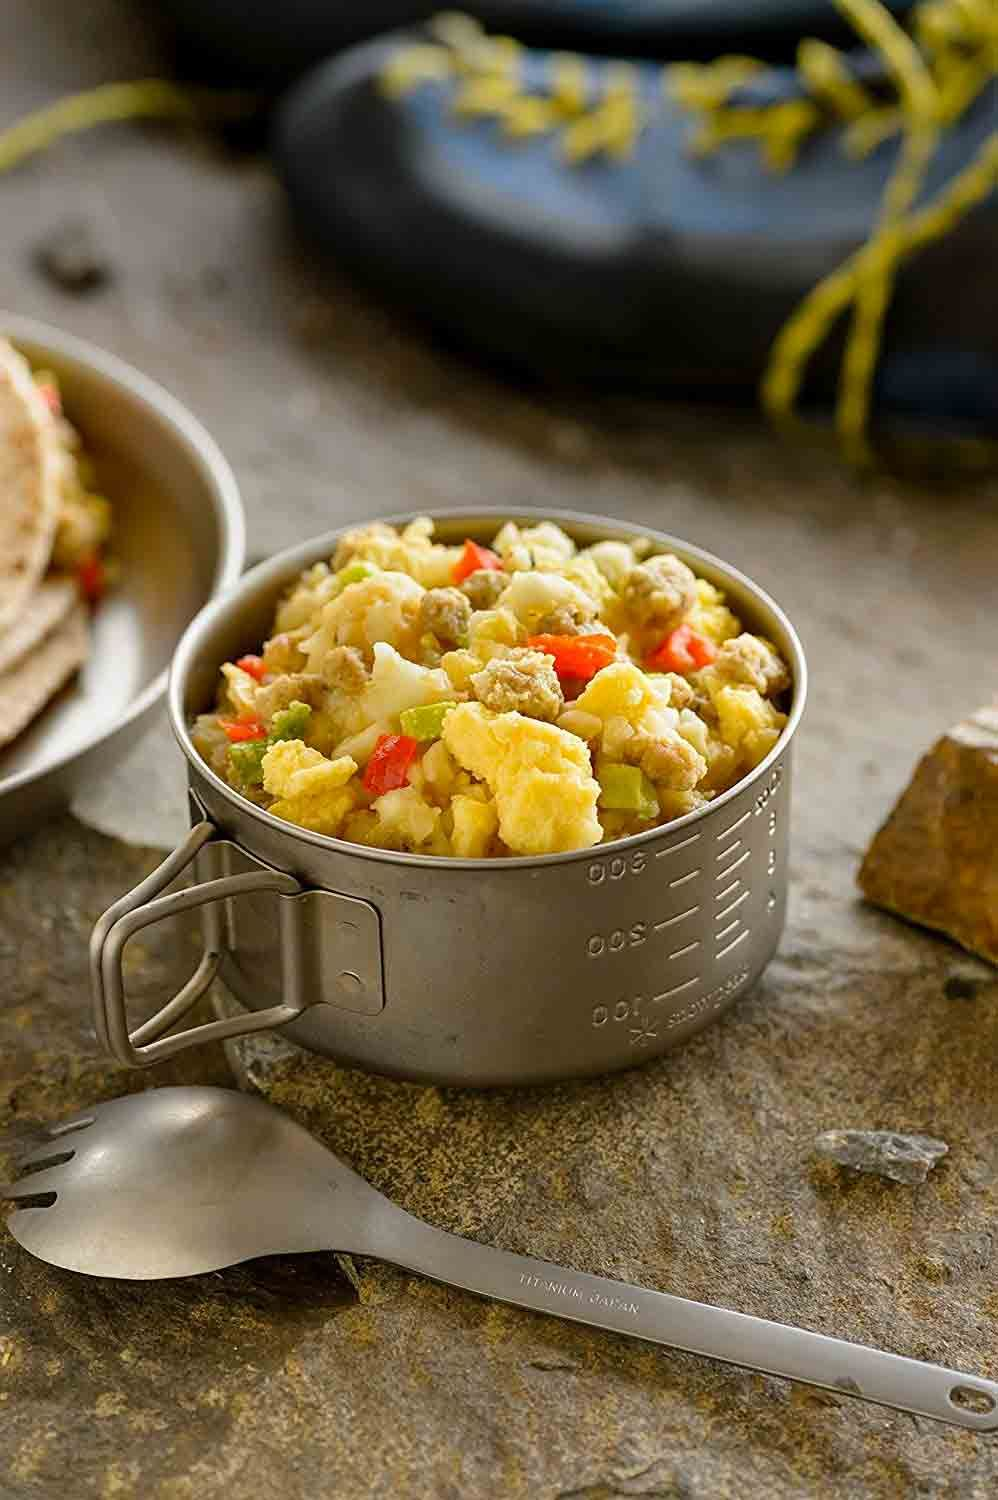 Hash Browns Scrambled Eggs Mixed With Pork Sausage Peppers And Onions For Breakfast While Backpacking Yes Please On Meals Stuffed Peppers Breakfast Skillet